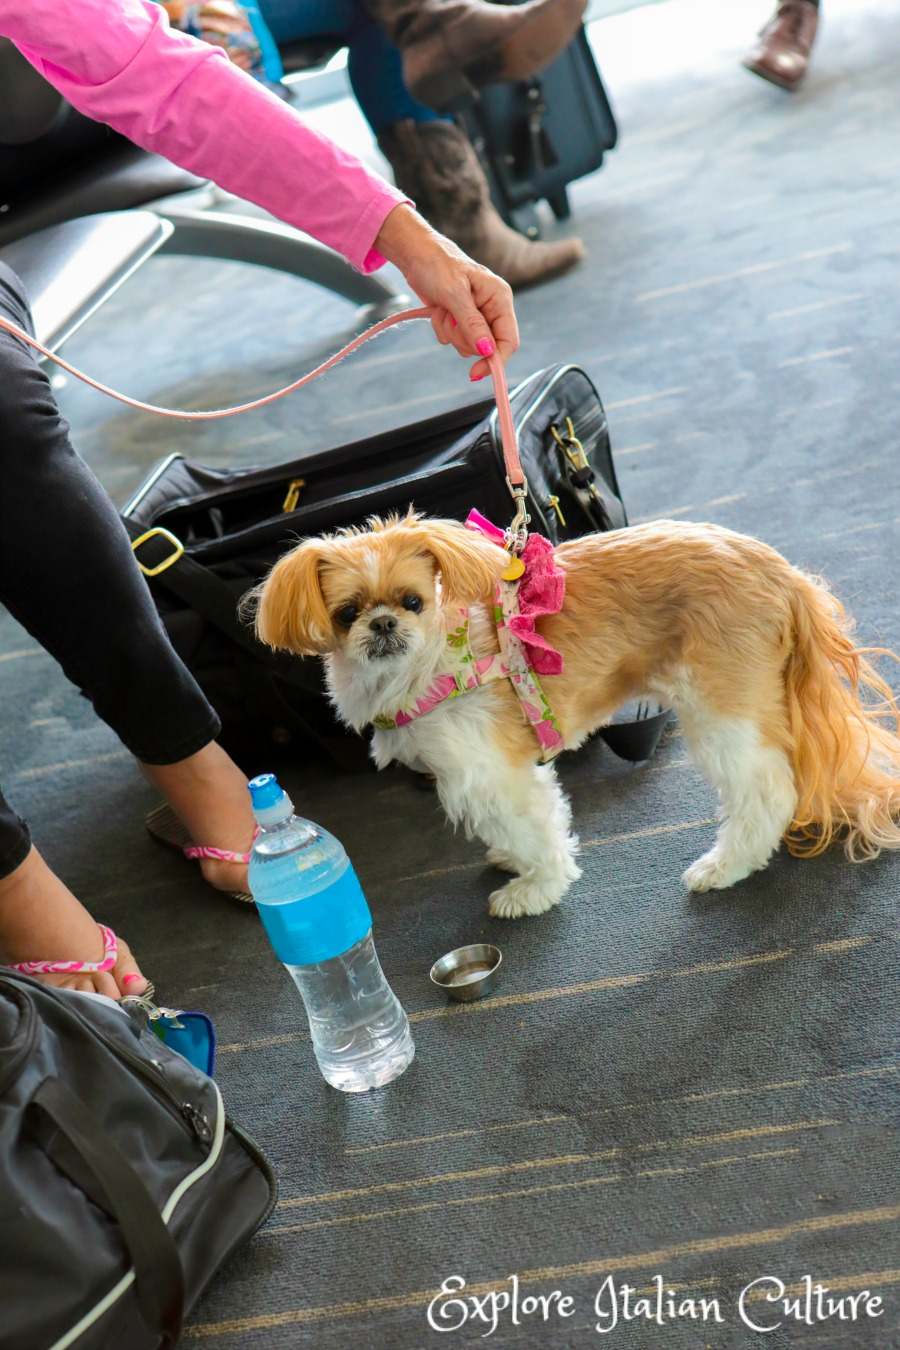 Your dog should be able to stay outside her crate until your flight is ready to board.